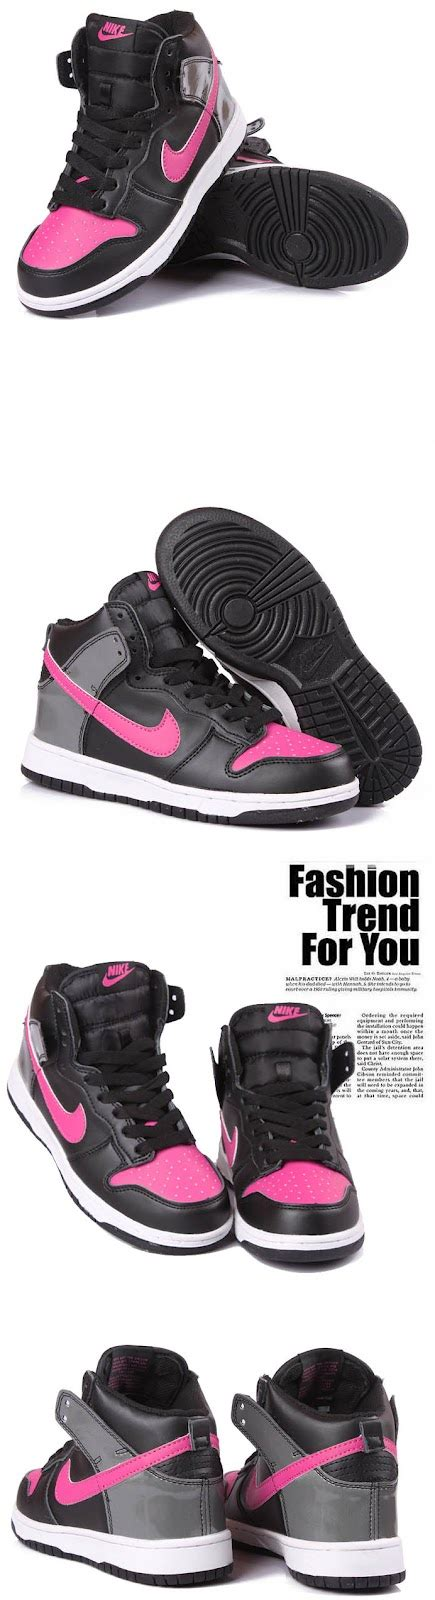 pretty nike shoes for pretty pop nike shoes for the pretty